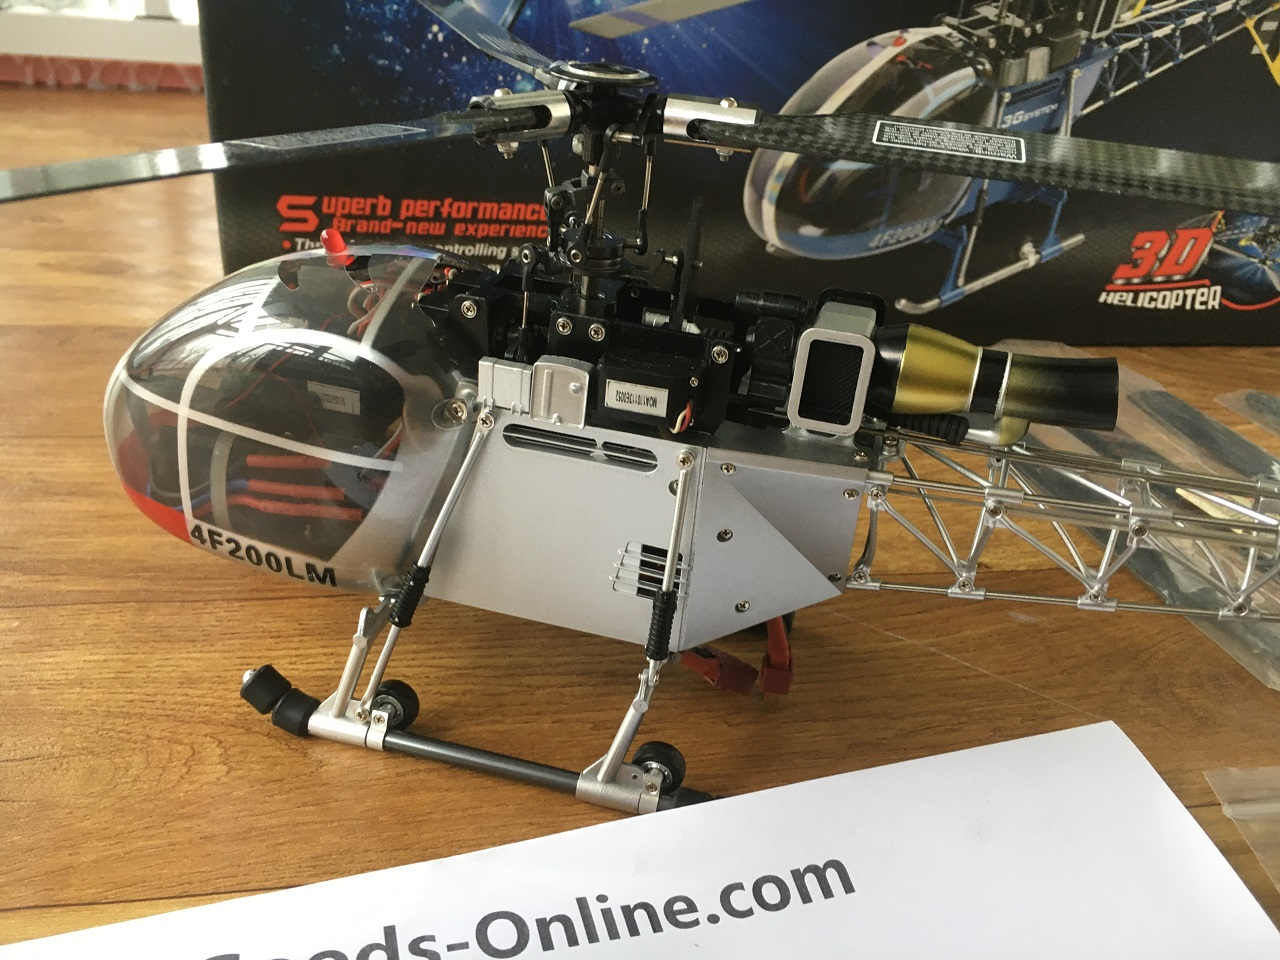 Walkera 4F200LM SA 315B Lama RC Helicopter, AEROSPATIALE SA-315 Lama Ready to Fly High Simulation Scale Model Radio Remote Control Helicopter